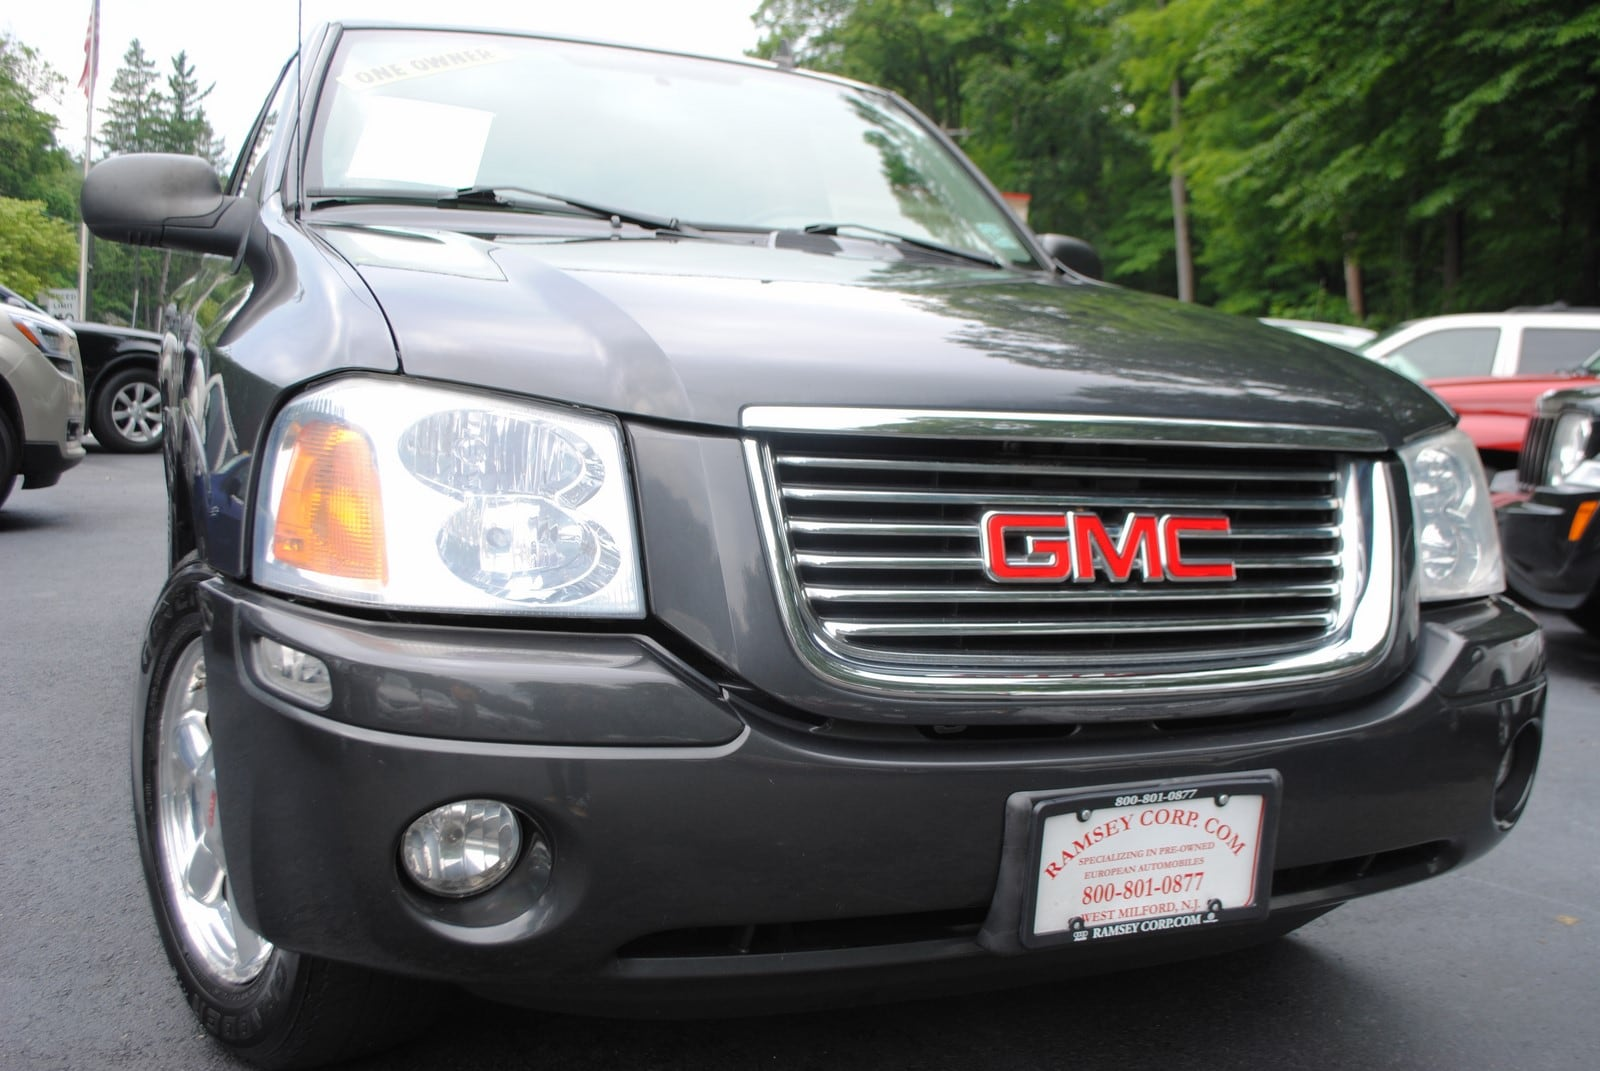 used 2007 gmc envoy for sale west milford nj. Black Bedroom Furniture Sets. Home Design Ideas